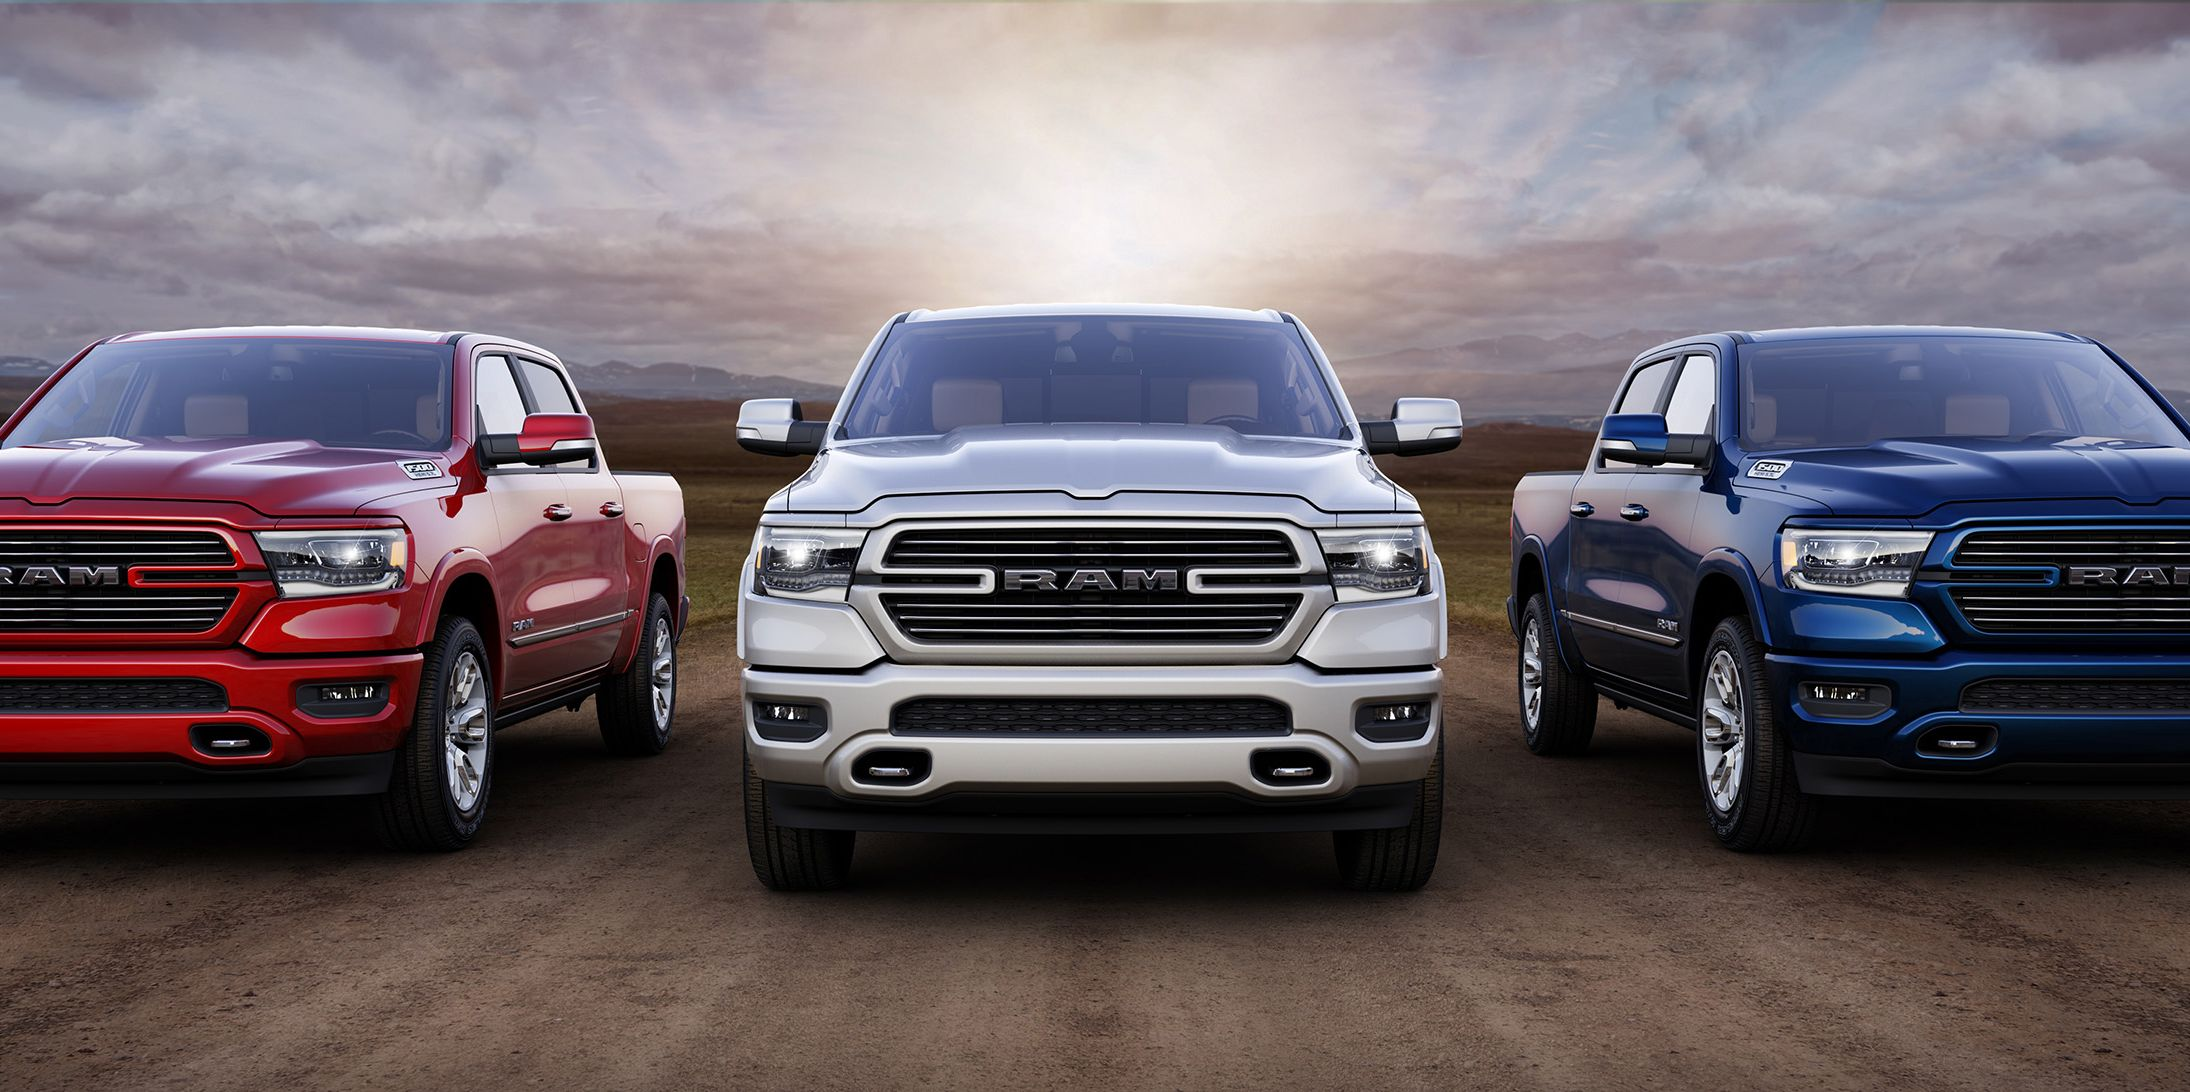 2020 Ram 1500 Adds Special Edition for the Southwest